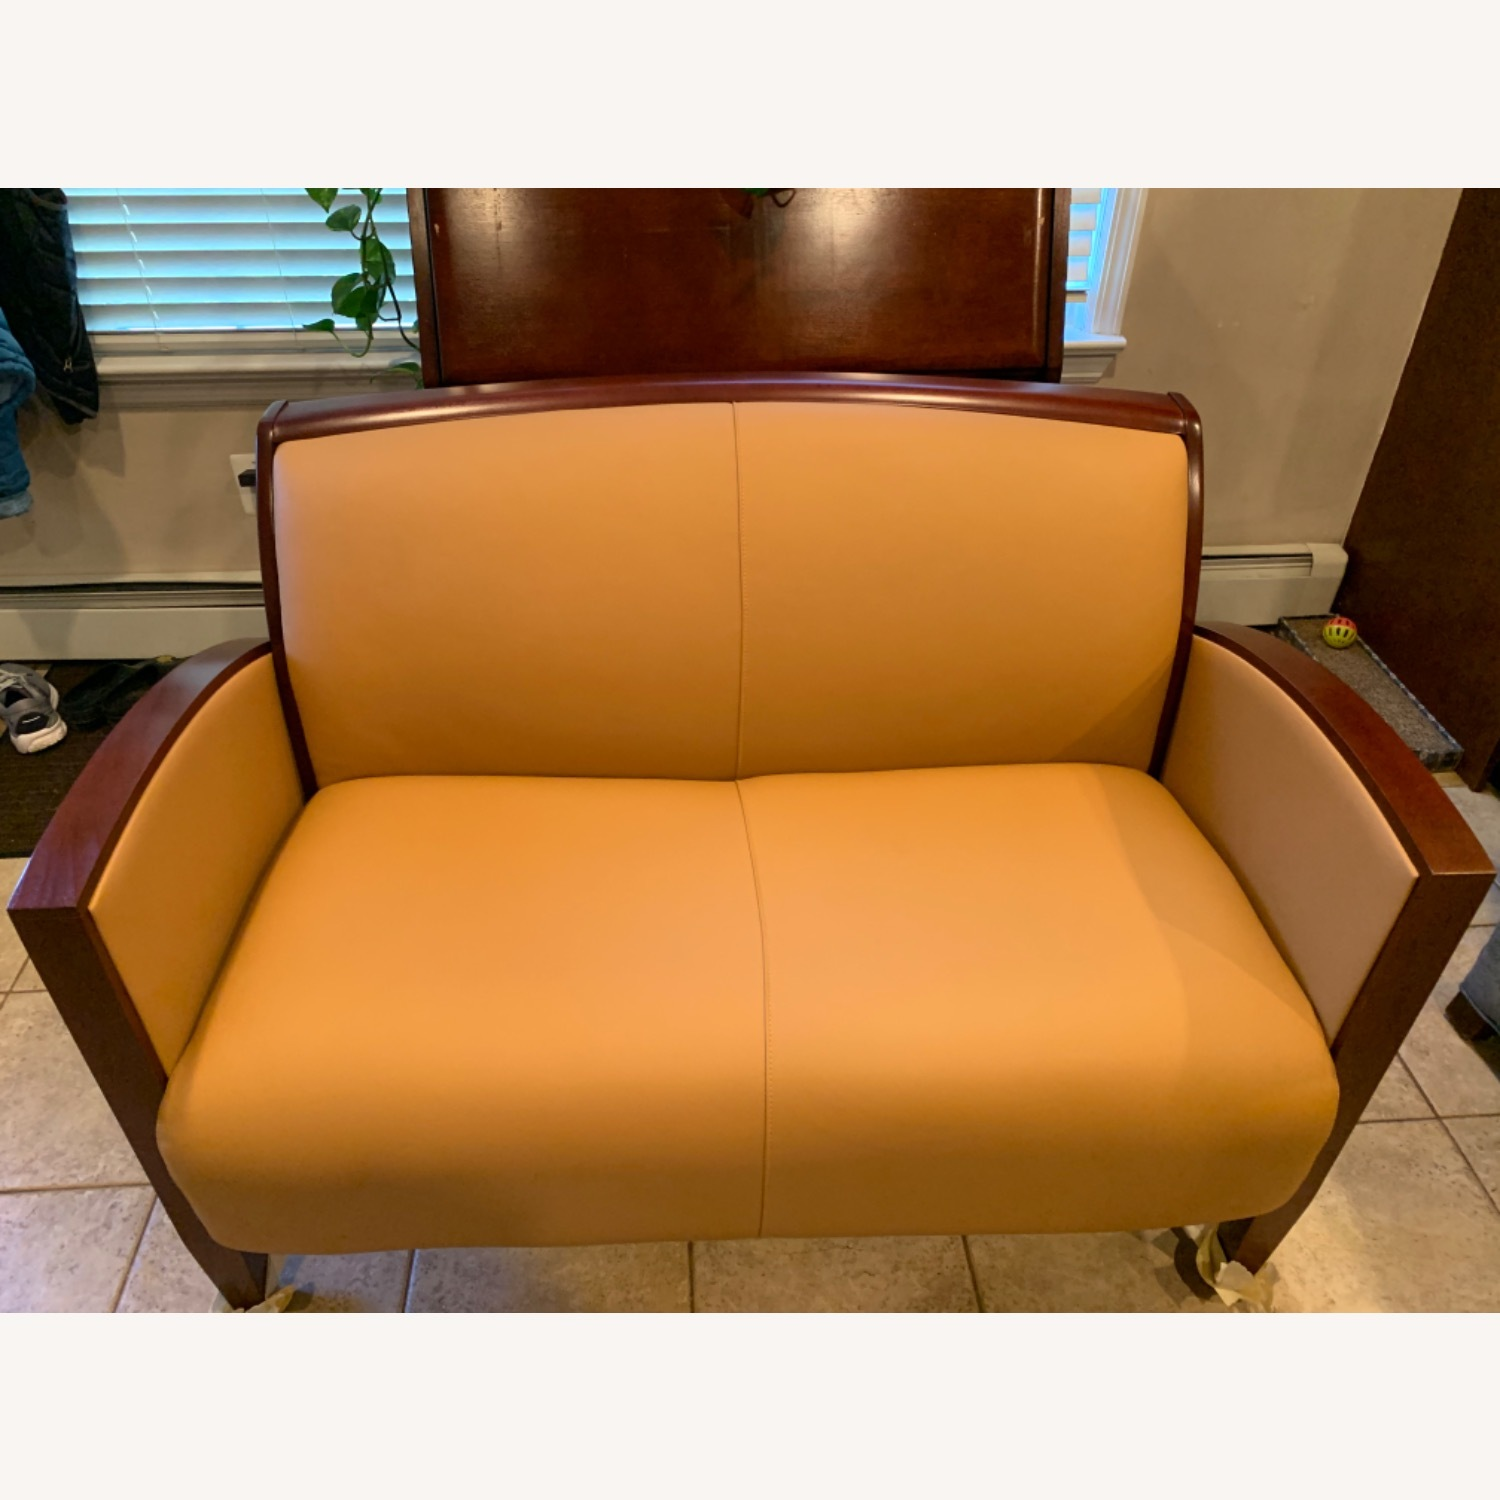 National Office Eloquence Leather Lounge Chair - image-8